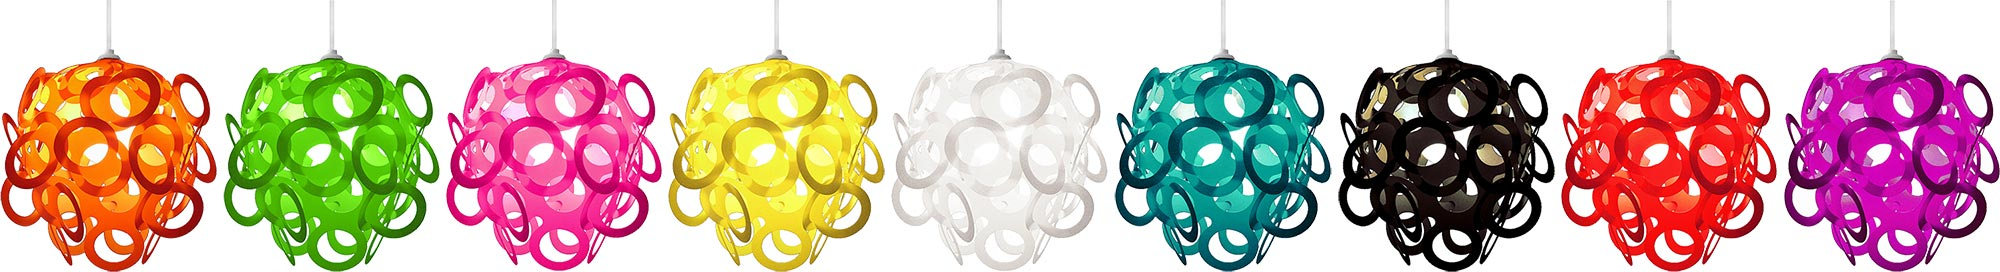 The Loop-Lu range available from funkylampshades.com